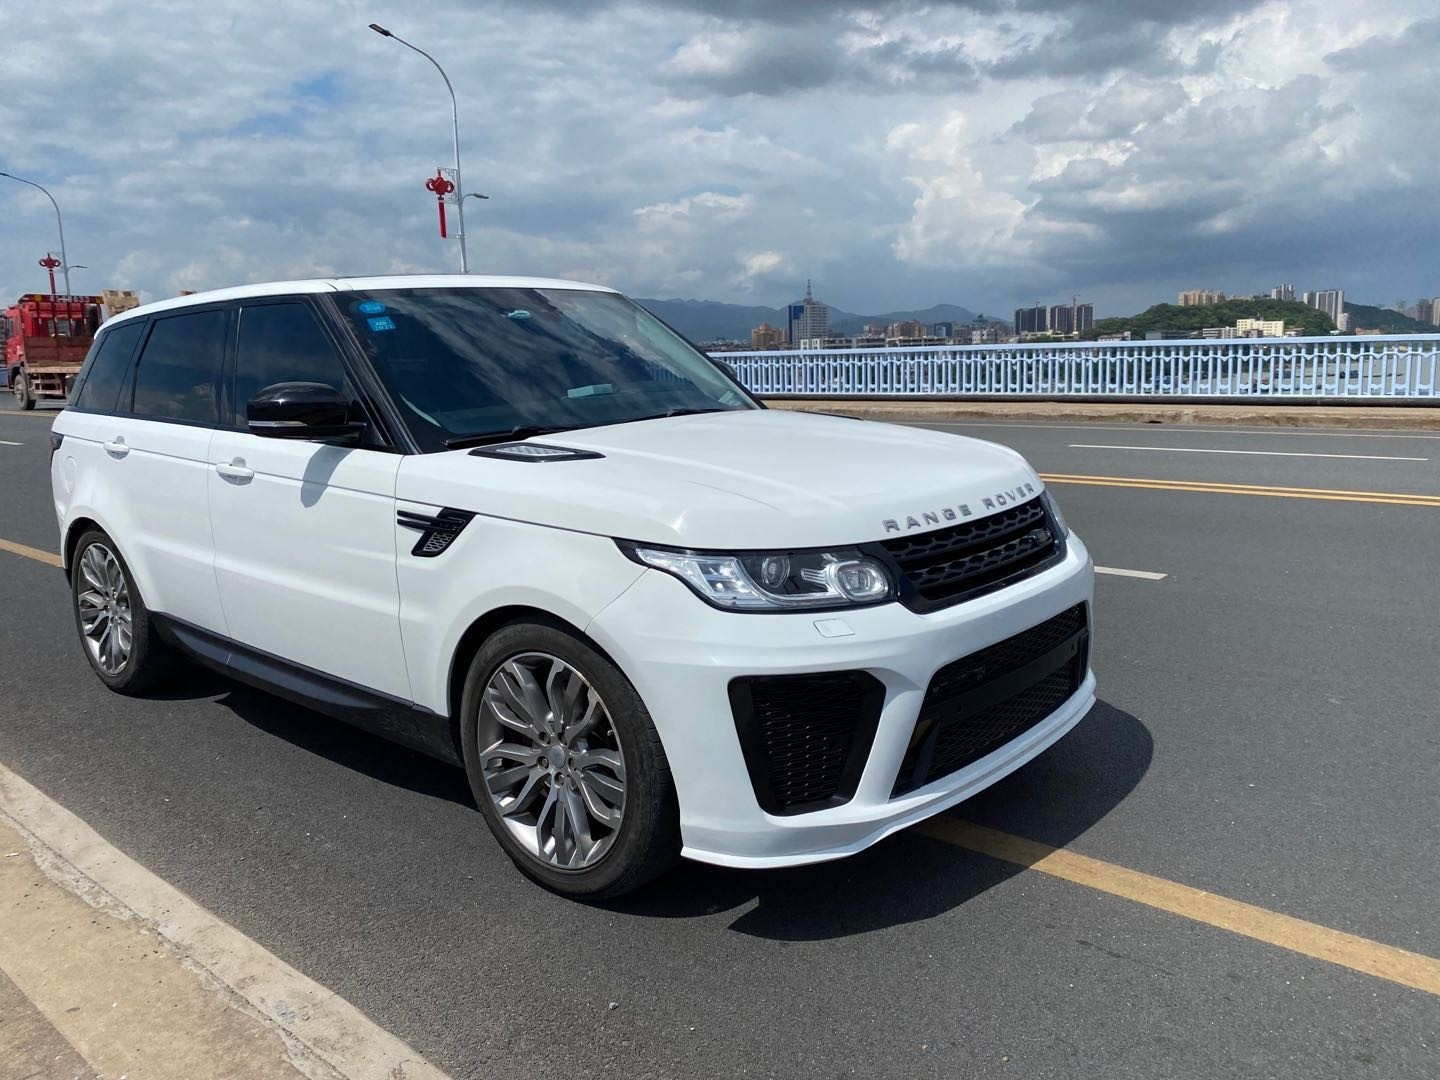 Range Rover Sport 2013-2017 L494 2018+ SVR Facelift Bodykit Upgrade (without new headlamps needed)